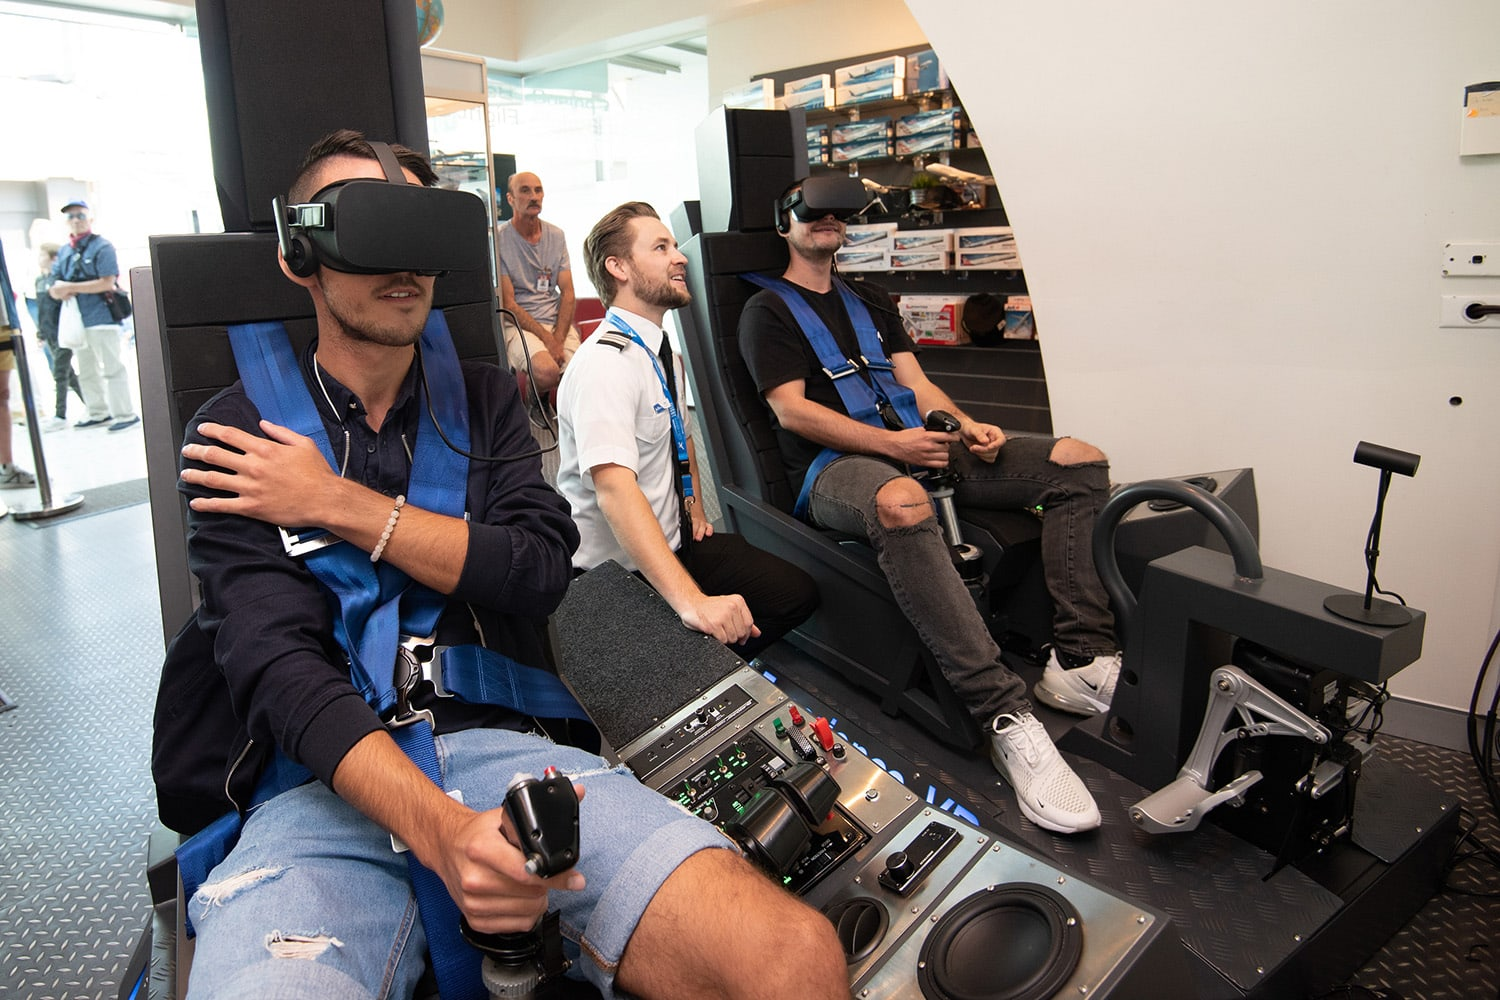 Virtual Reality - Jet Fighter Experience - 15 minutes